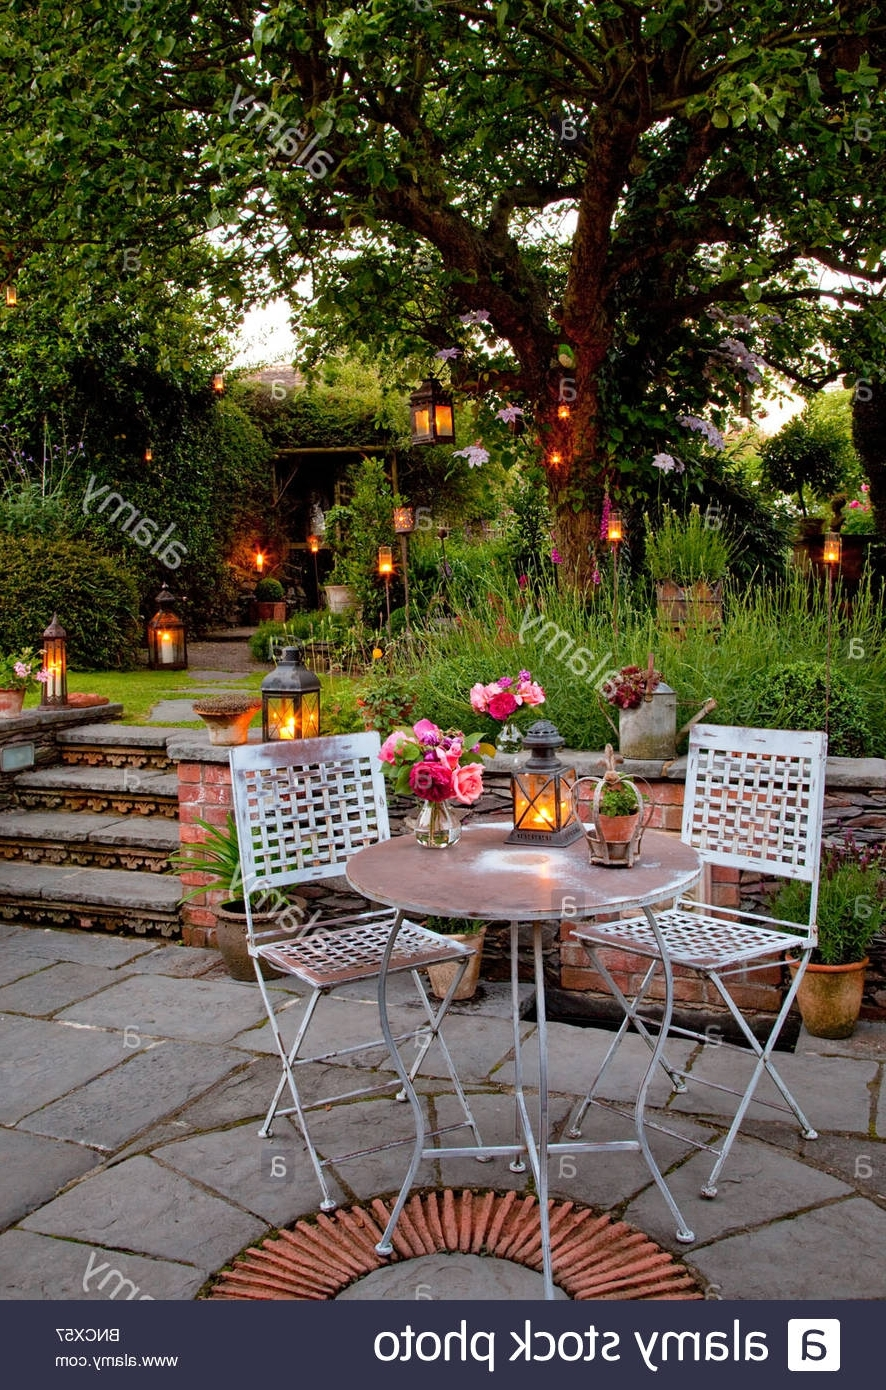 Outdoor Table Lanterns Within Favorite Metal Table And Chairs On Patio With Candles And Lanterns In Garden (View 19 of 20)